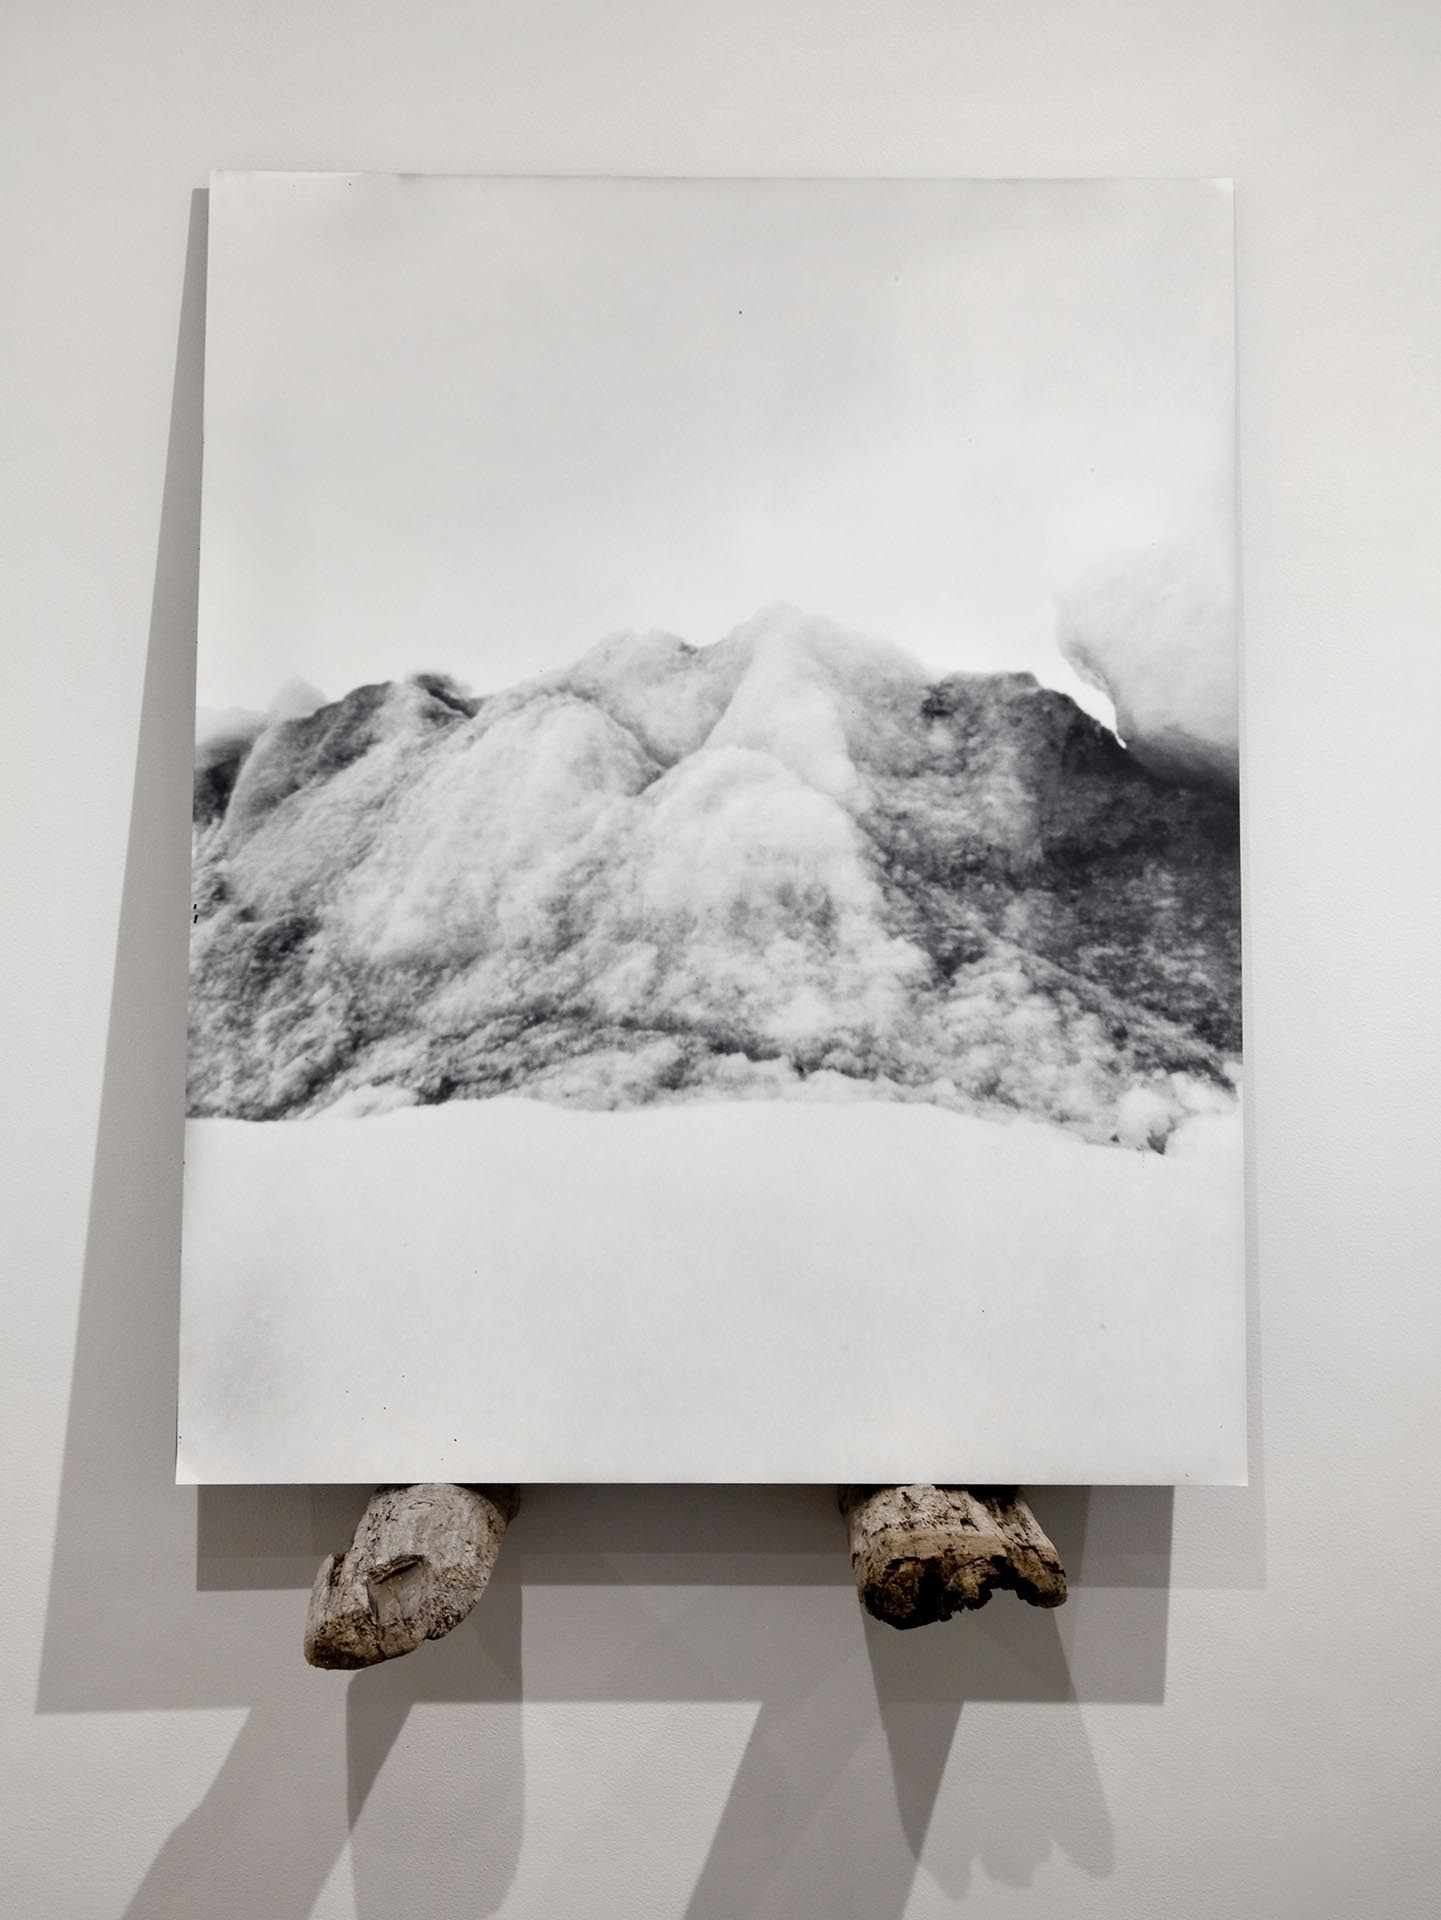 Vanessa Albury, Arctic, Future Relics (Glacial Ice), 2016, Selenium-toned Gelatin Silver Print mounted to museum board and wood, 32